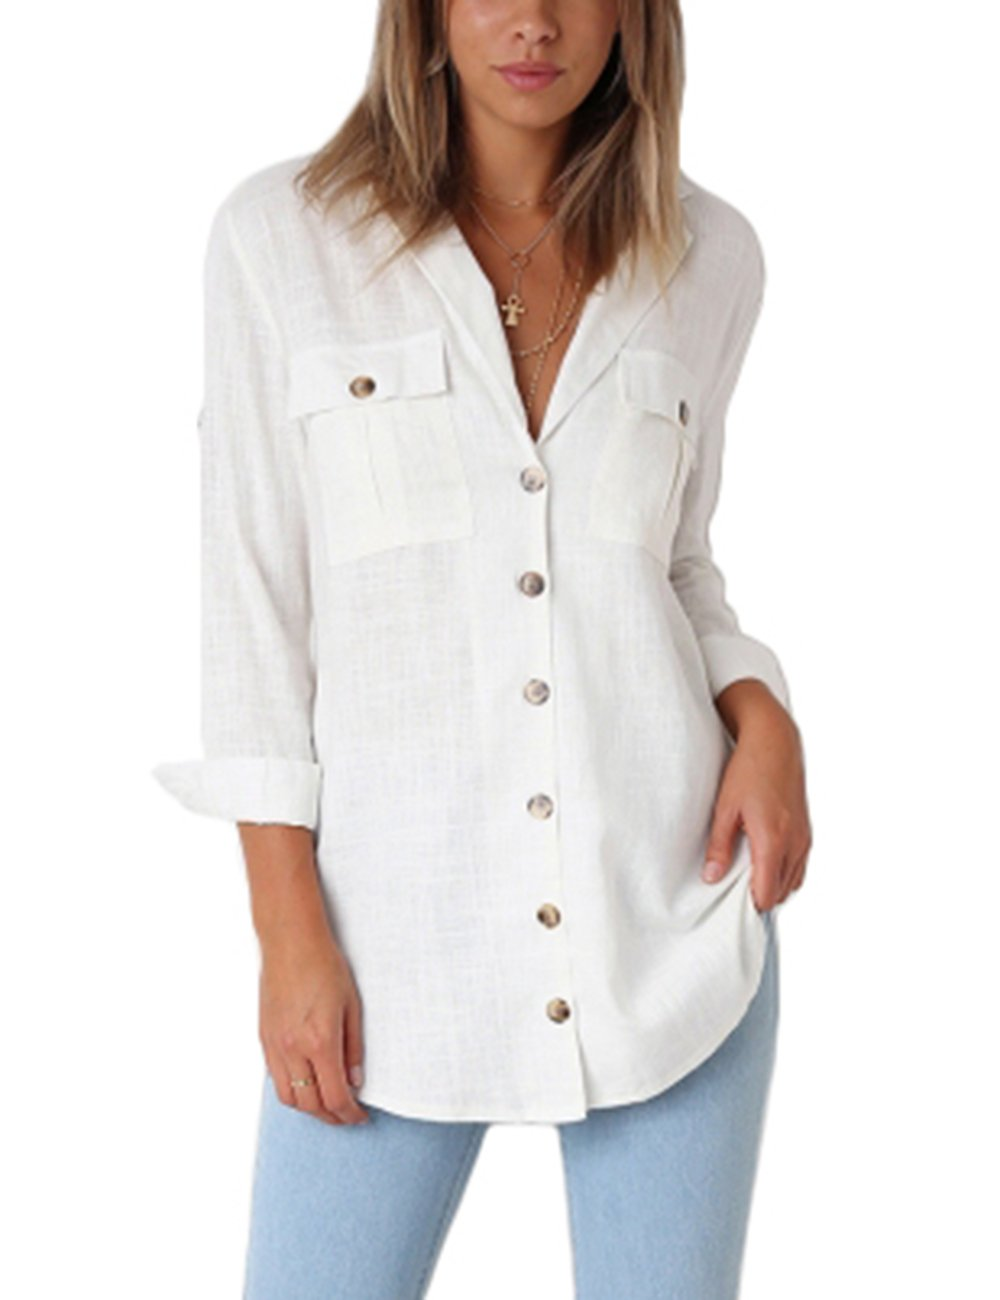 GRAPENT Women's Casual Loose Roll-up Sleeve Blouse Pocket Button Down Shirts Tops M(US 8-10) White by GRAPENT